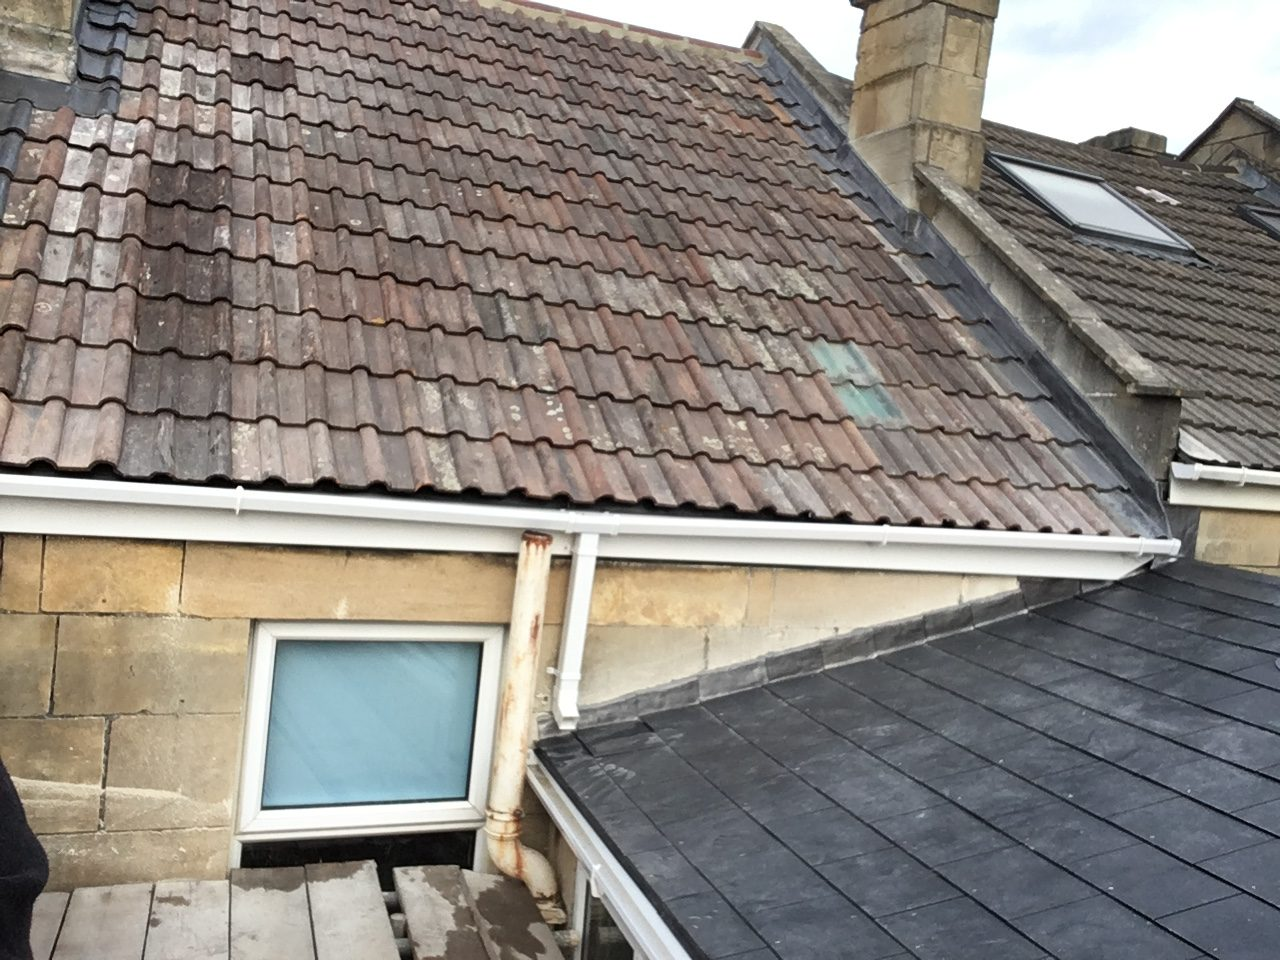 Clay double roman roof in Oldfield Park Bath, also low pitched slate roof with Easy slate rubber inserts allowing for a 12 degree pitch